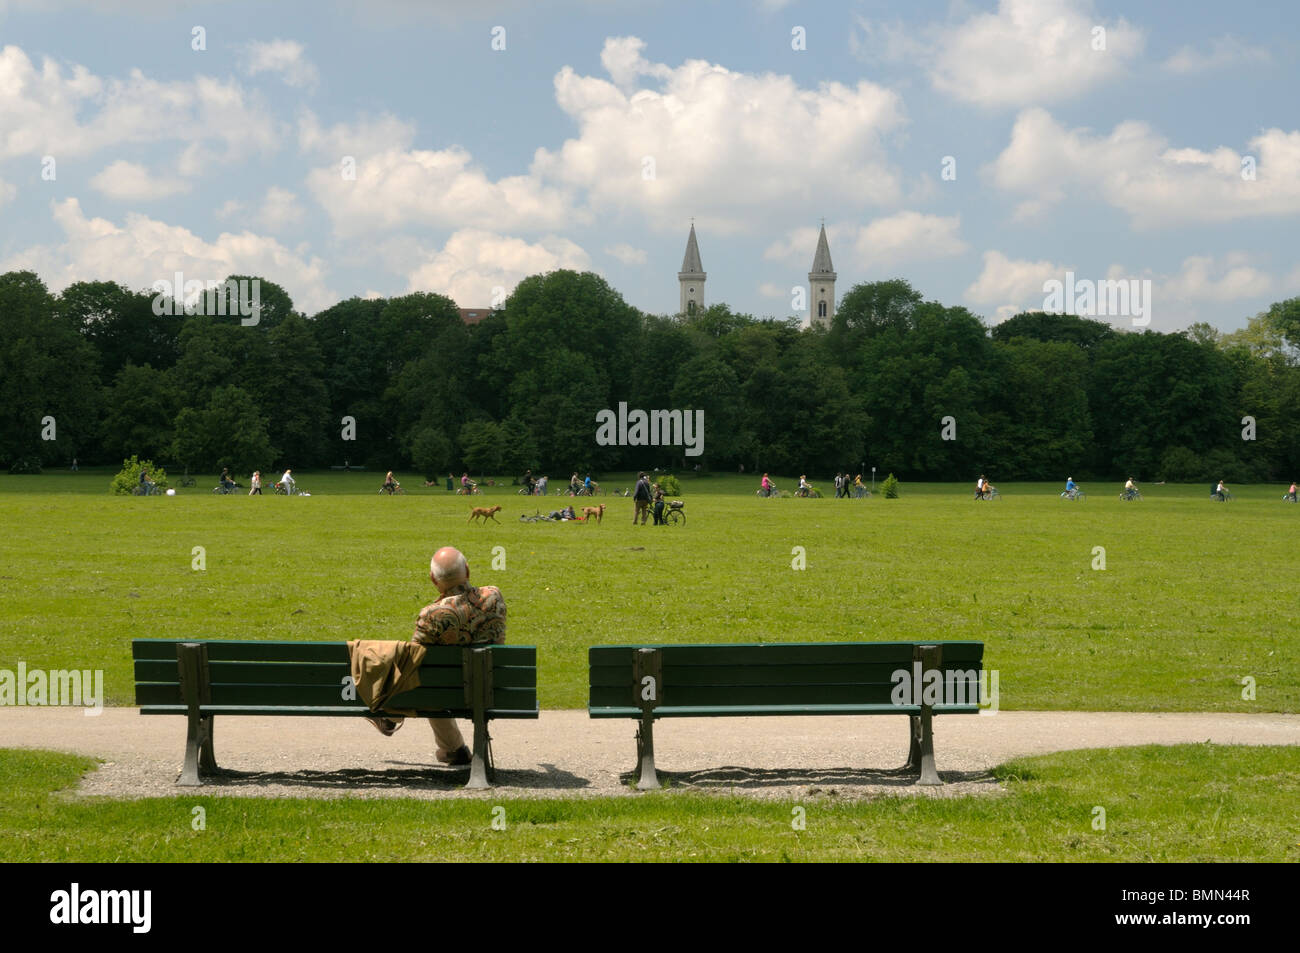 People relaxing in the Englischer Garten park in Munich, Bavaria - Stock Image